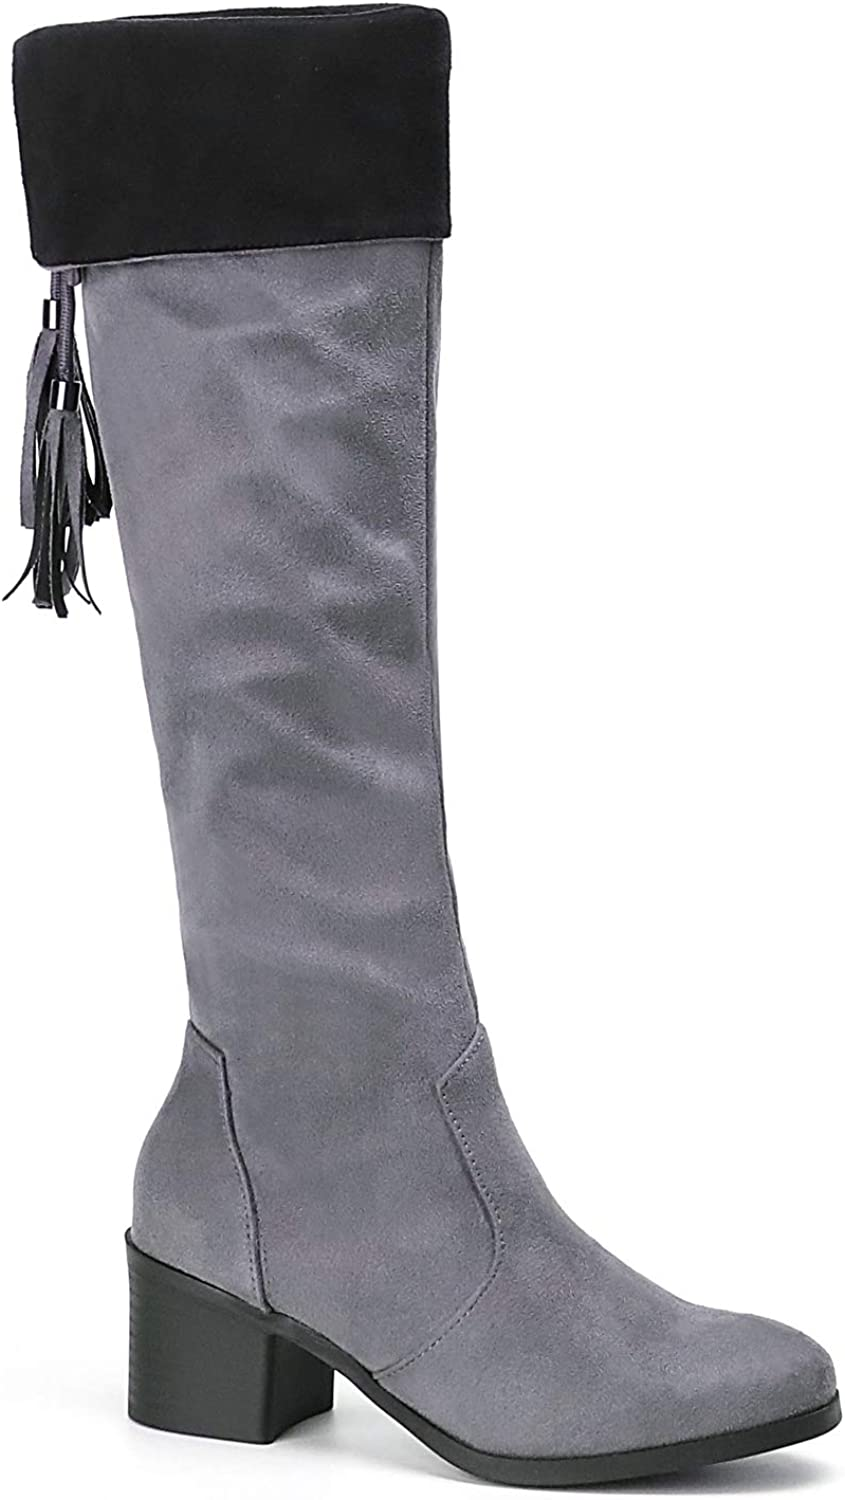 Trary Women's Over The Knee High Chunky Heel Boots with Side Zipper